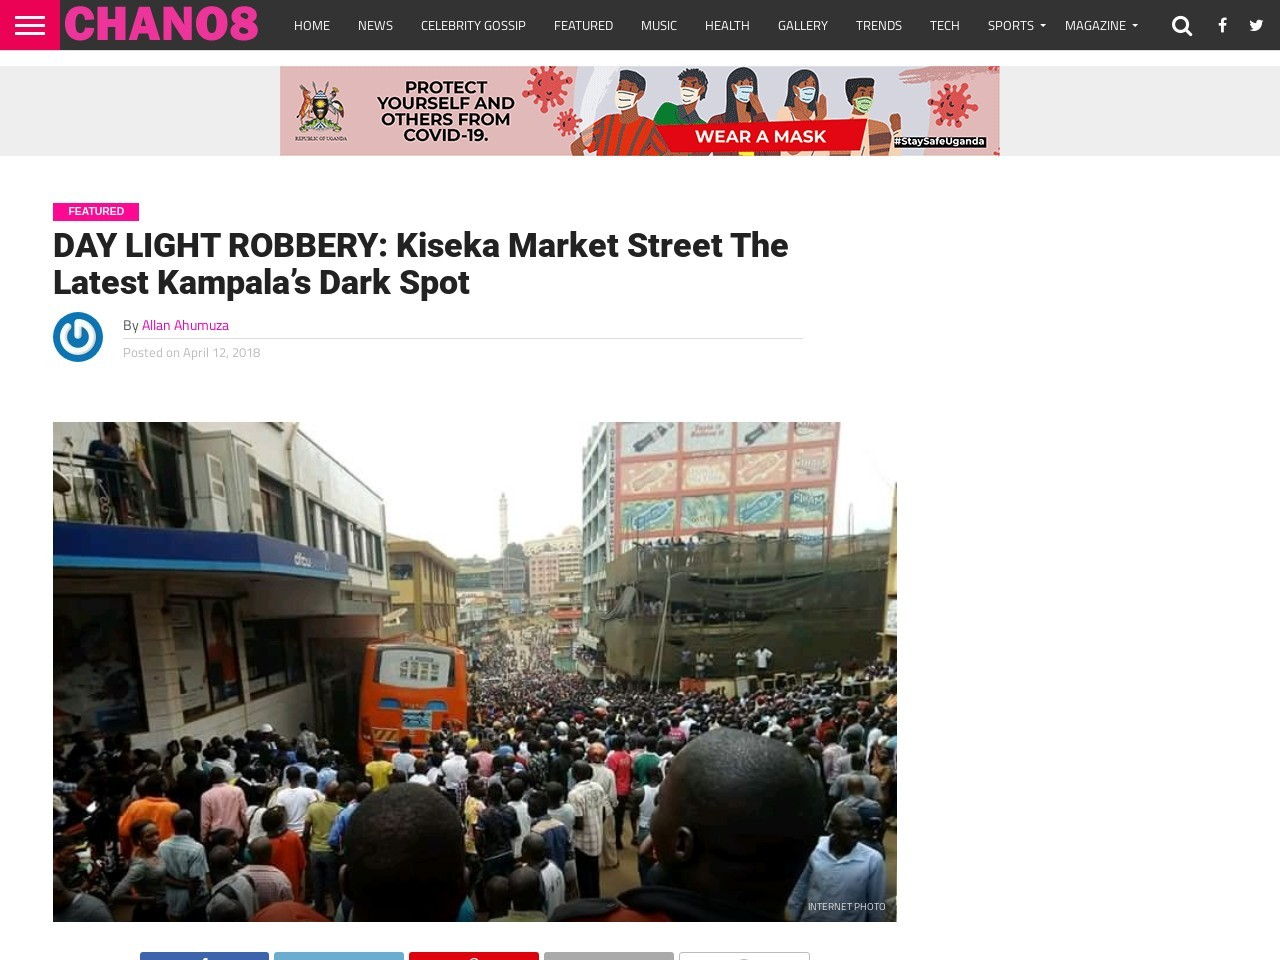 DAY LIGHT ROBBERY: Kiseka Market Street The Latest Kampala's Dark Spot